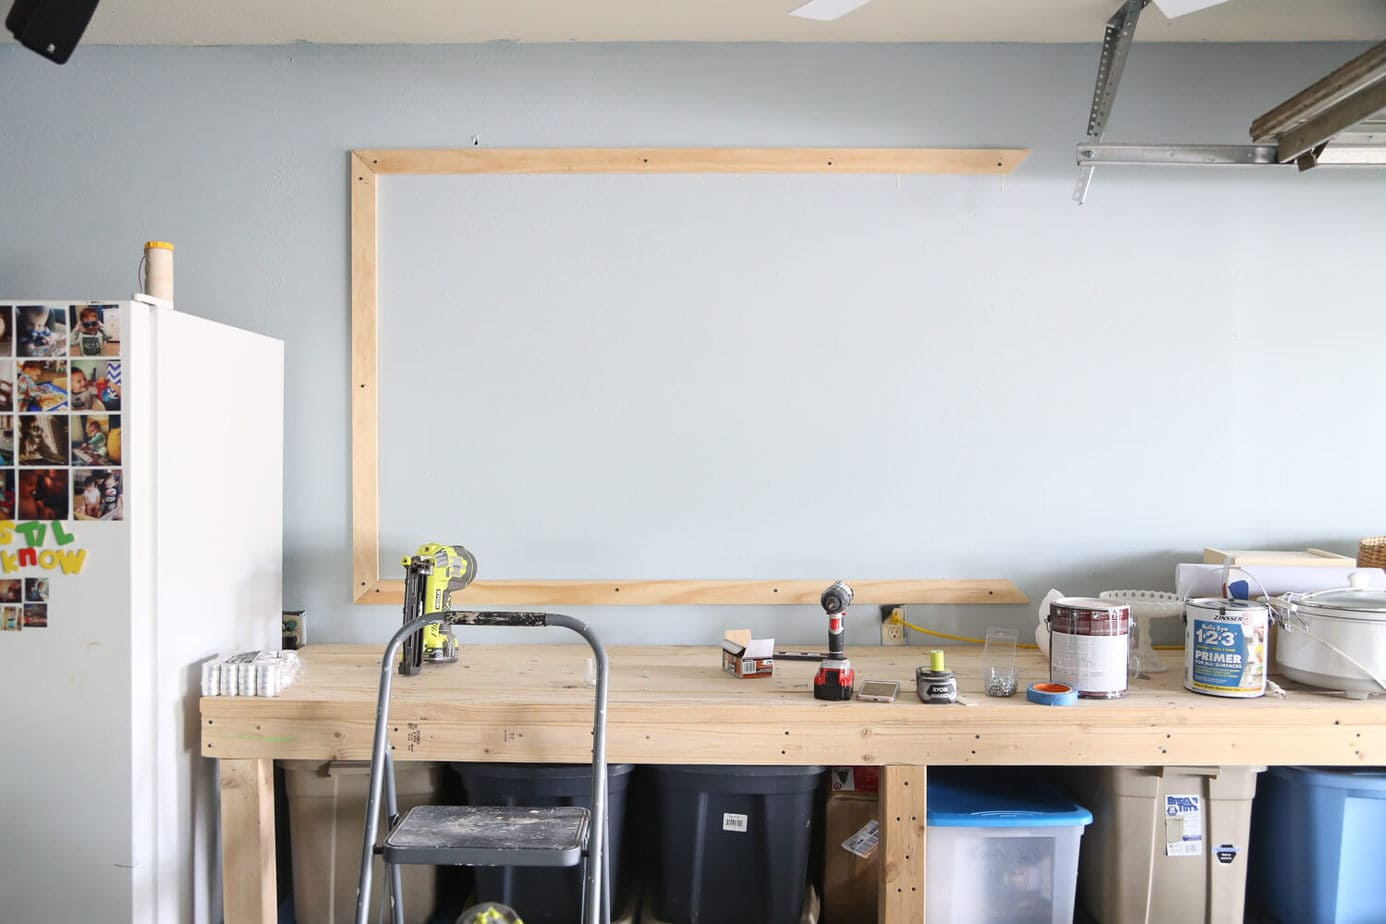 three boards on wall for chalkboard frame